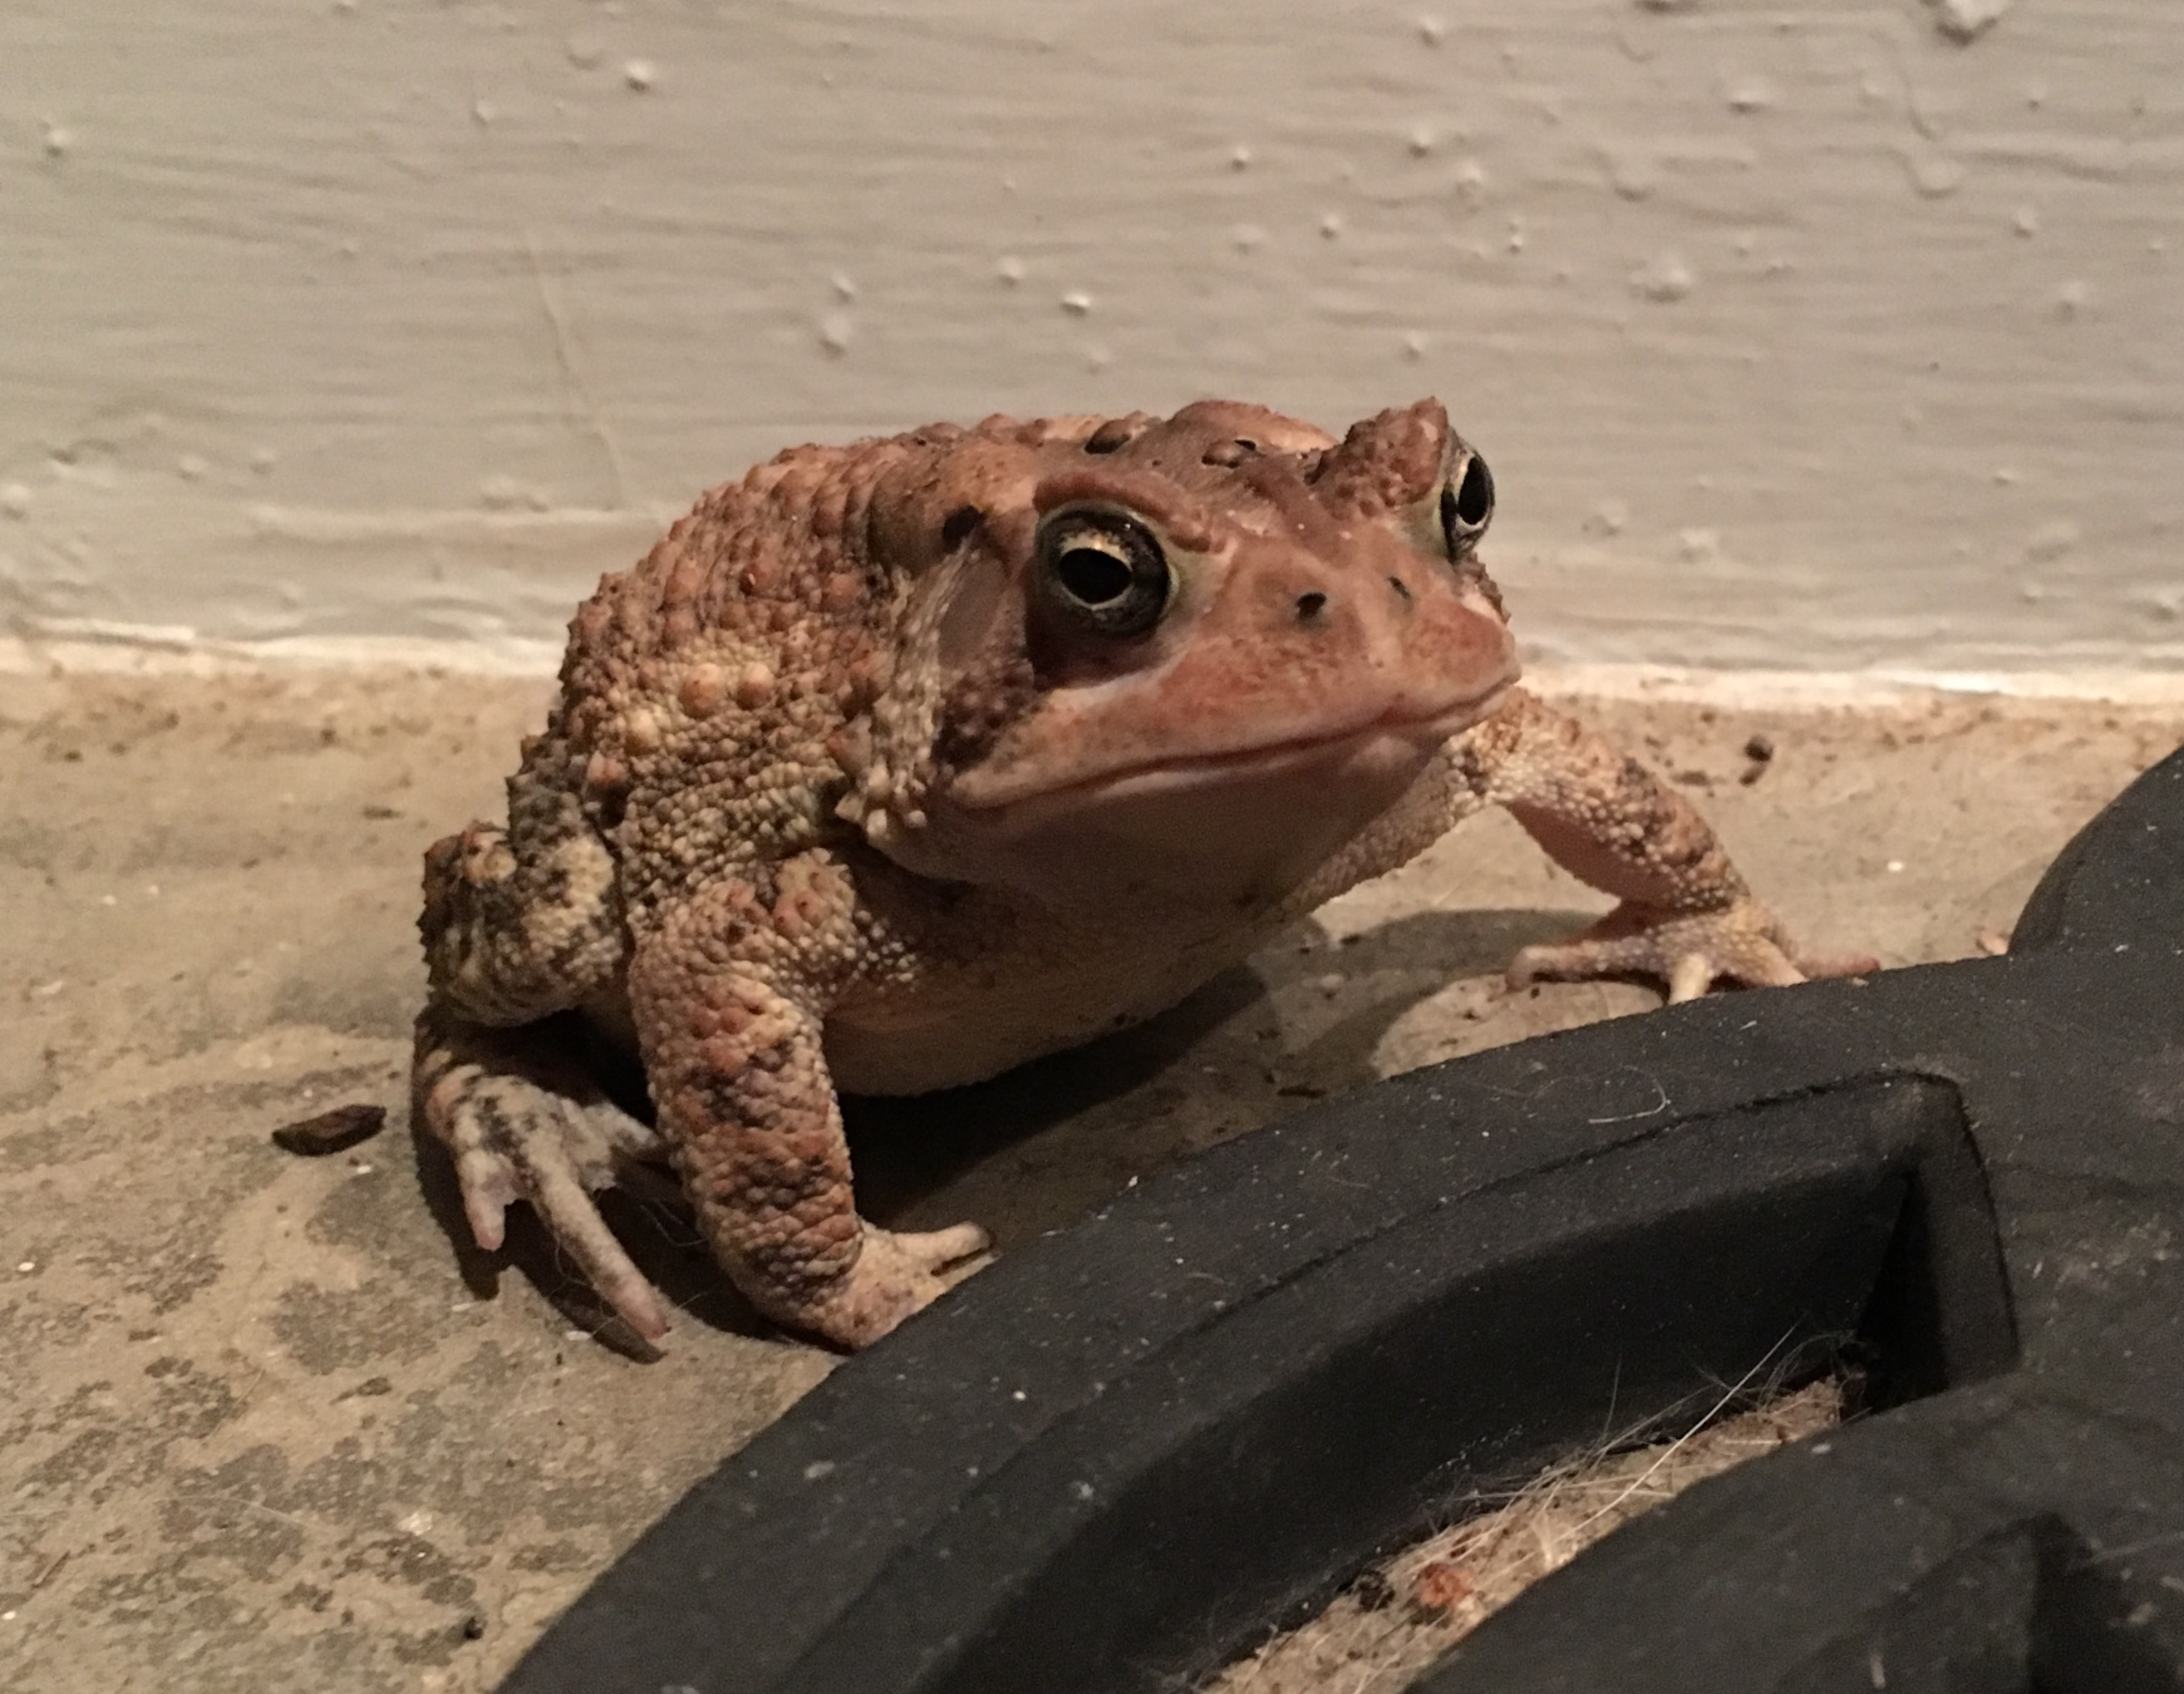 Newsome named his friendly visitor Mr. Toad.